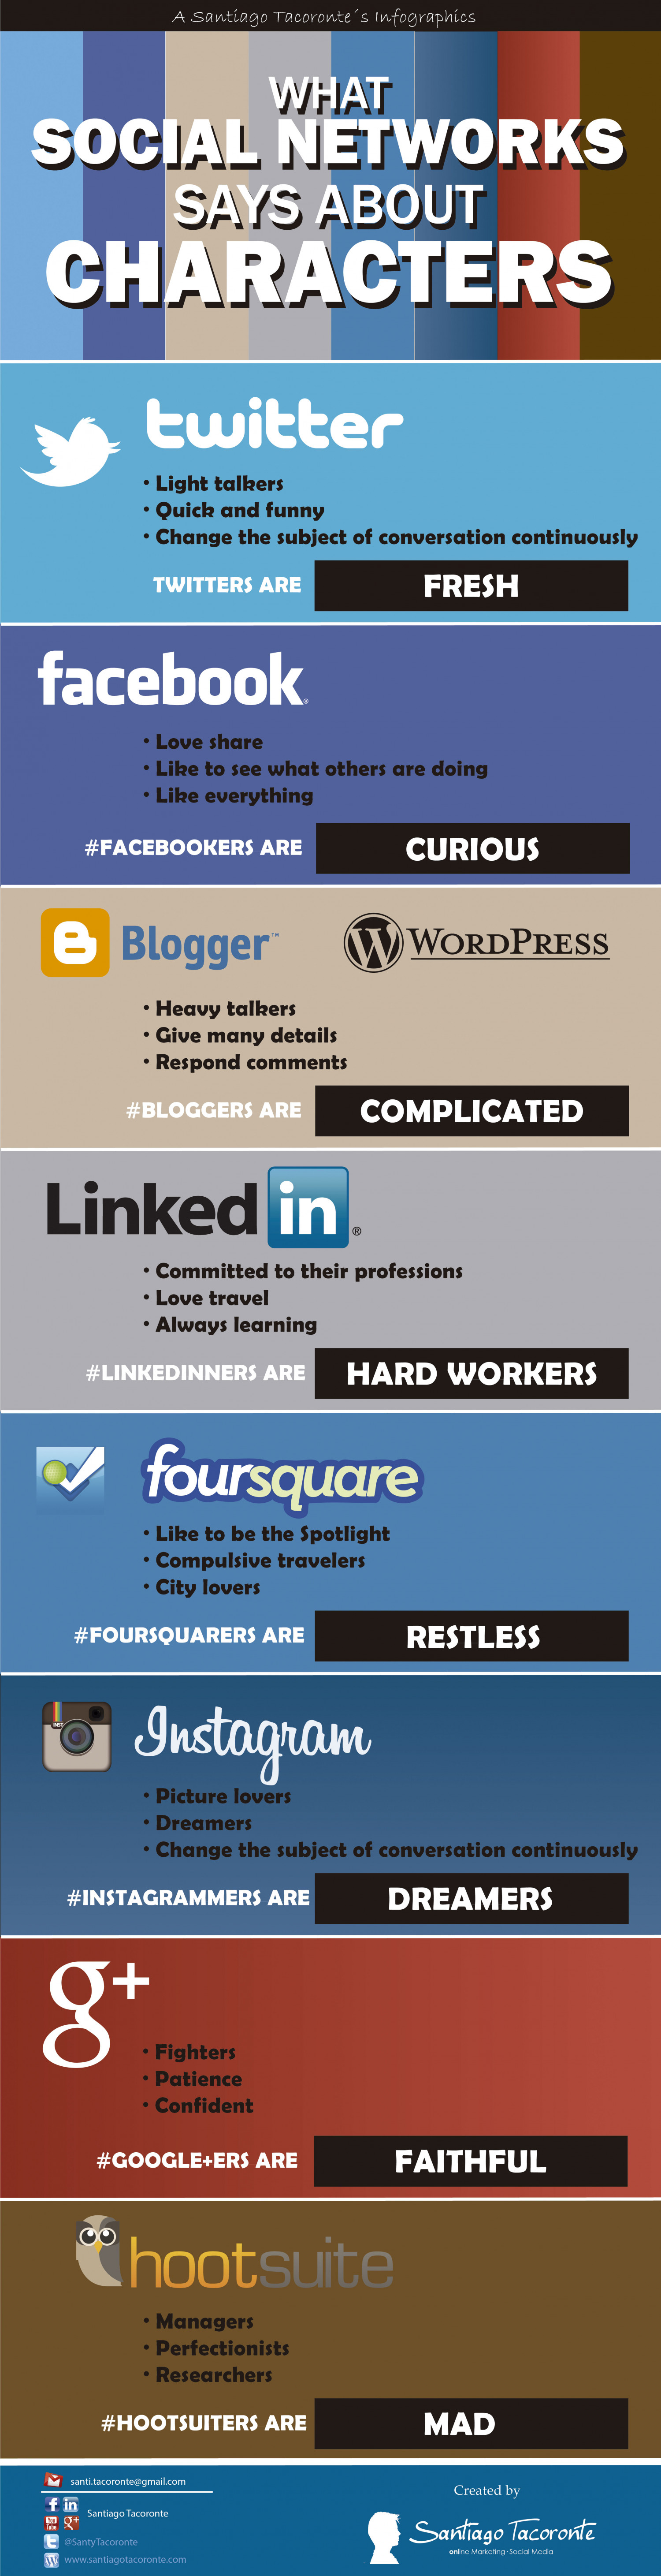 What Social Networks Says About Characters Infographic